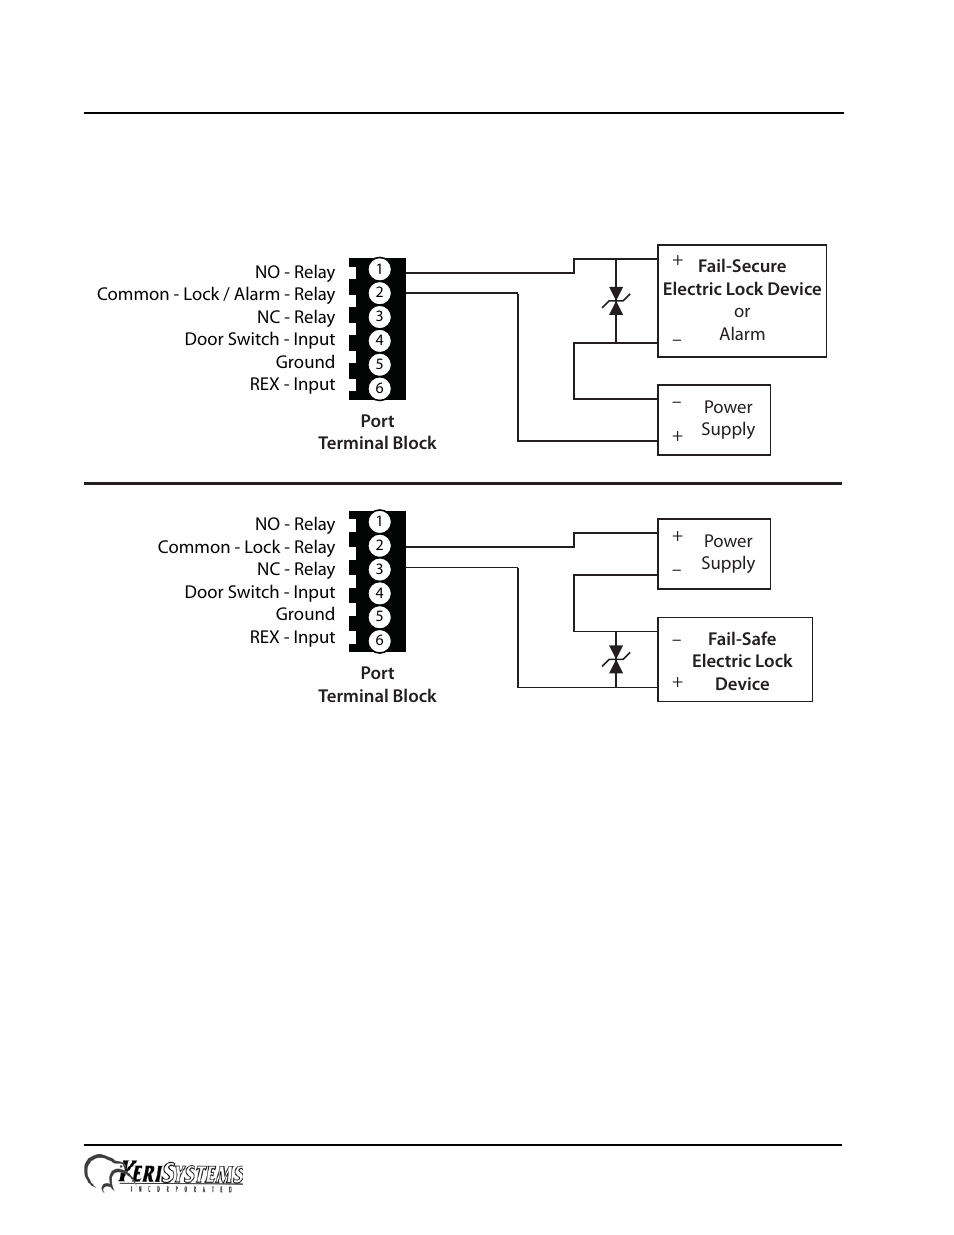 hight resolution of 3 port protection 4 isolation relays nxt 2 d 4 d controller keri systems nxt 4 d user manual page 3 6